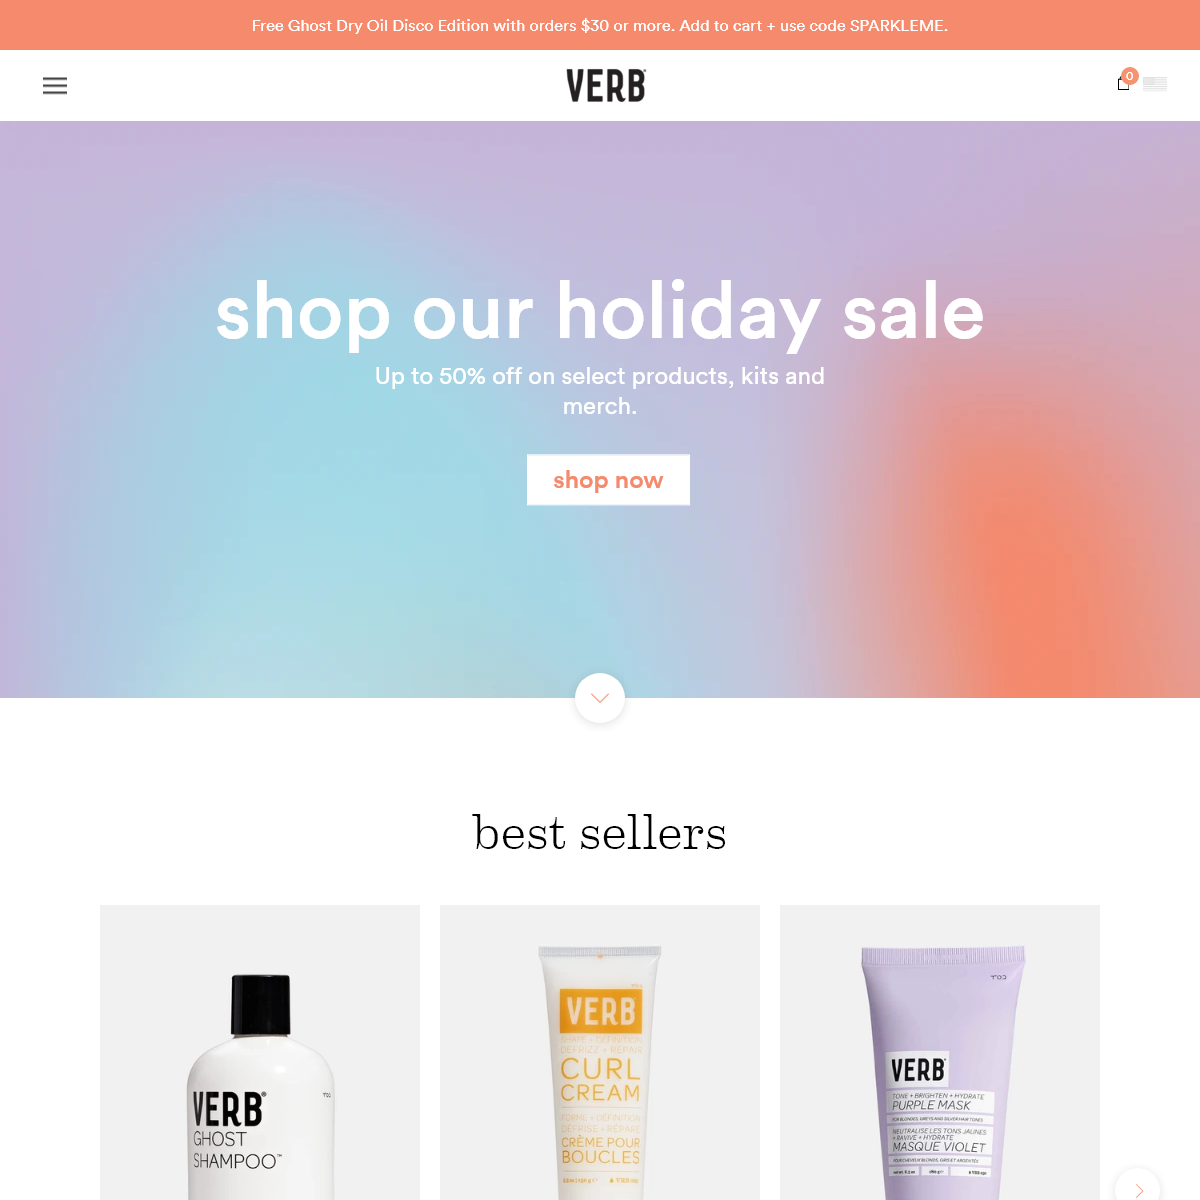 Verb Products - Salon-Quality Hair Care and Styling Tools